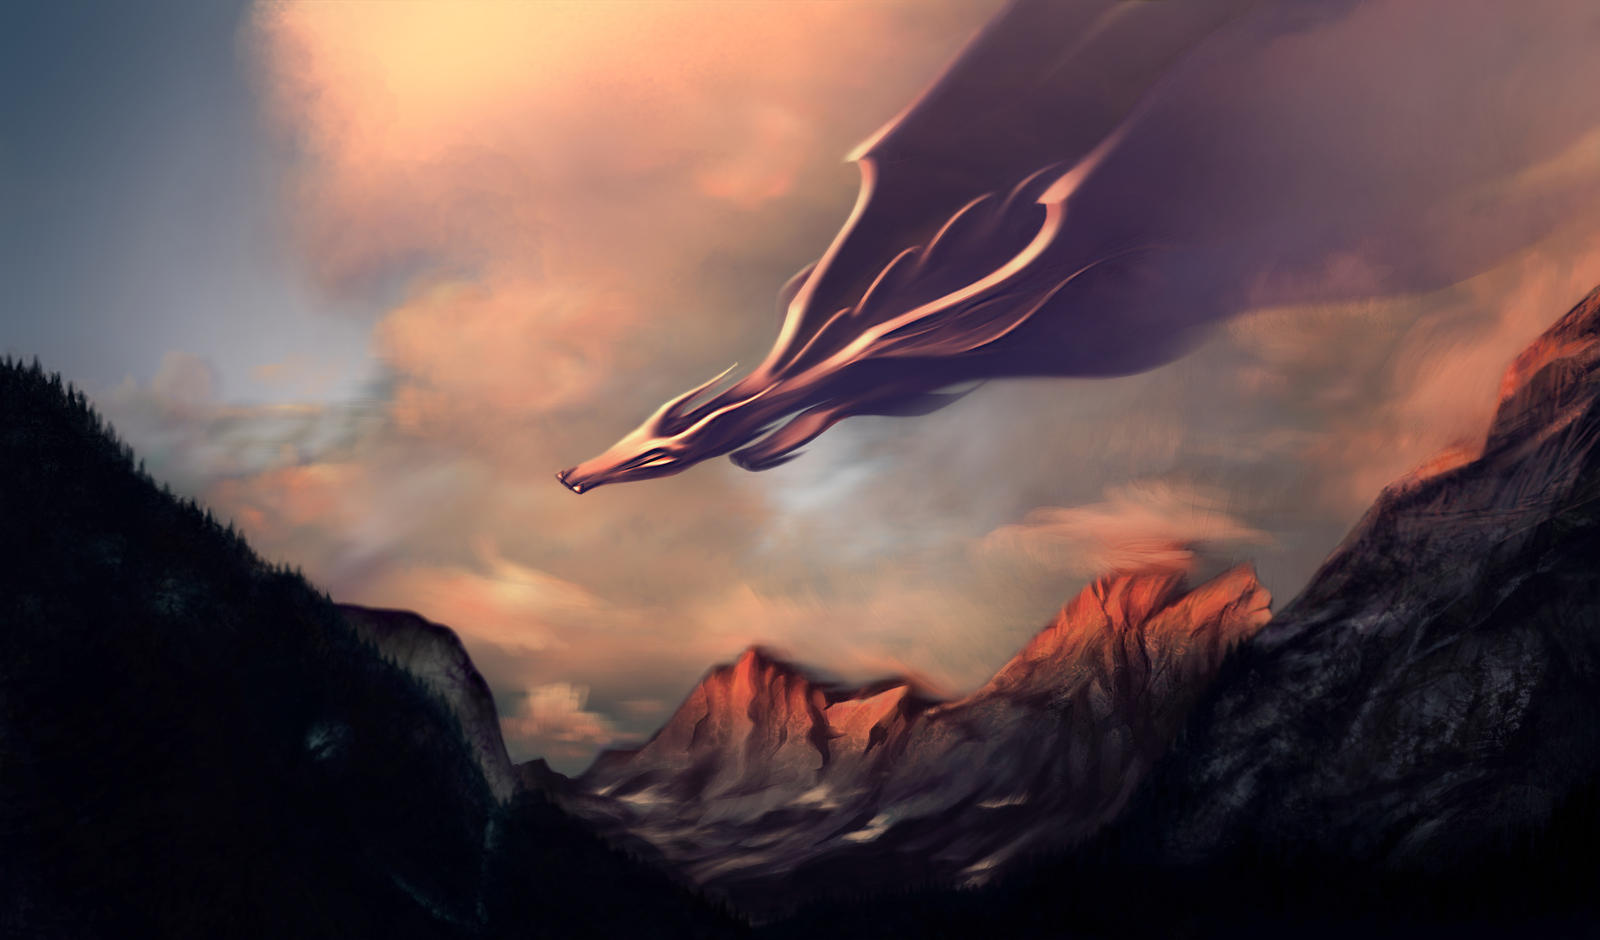 Dragons in Sunset 1a - Dragons Wallpaper (40993230) - Fanpop |Dragons And Sunsets